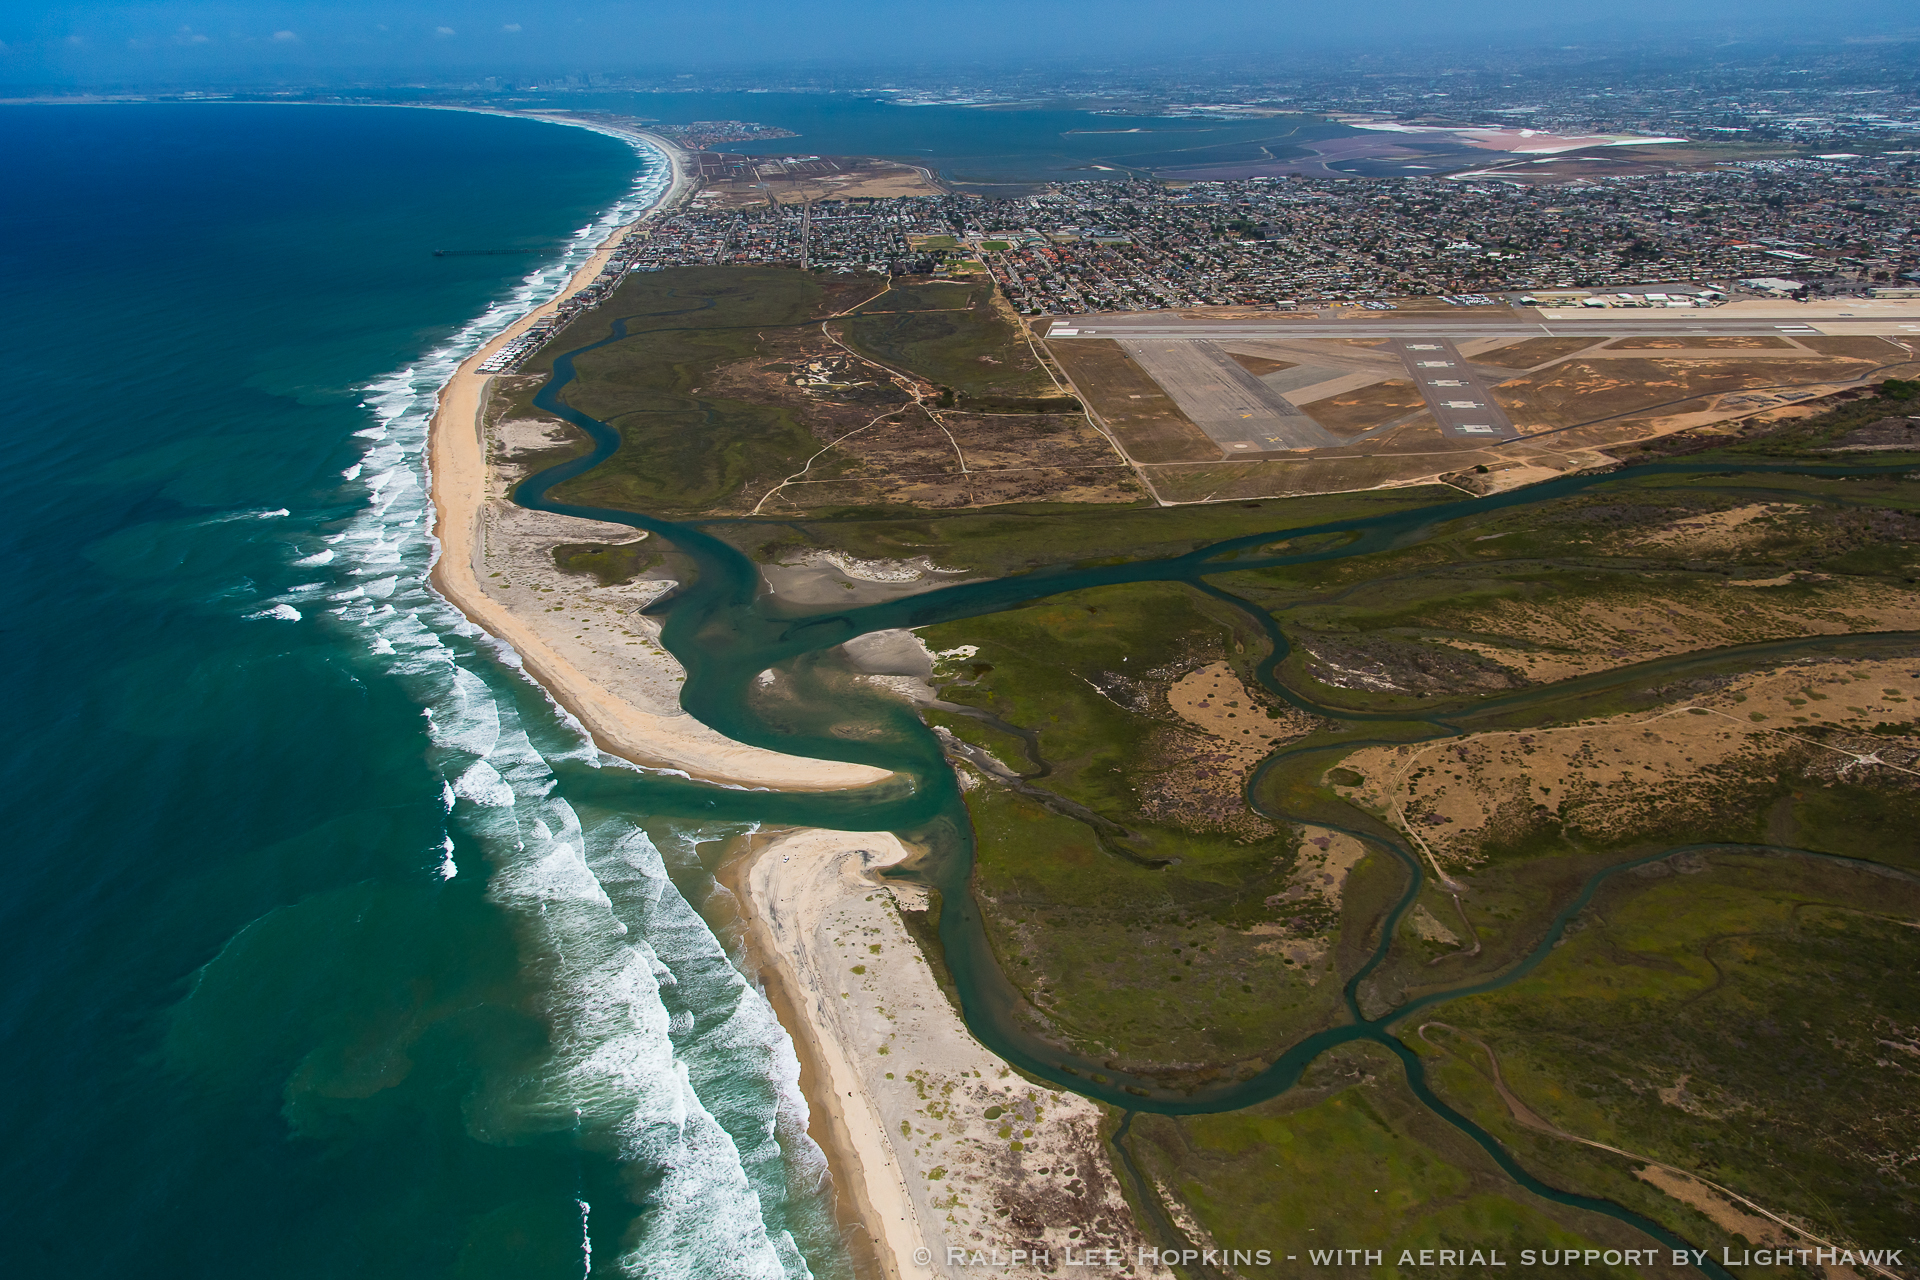 Tijuana River, US Border, Looking toward Tijuana, United States-Mexico Border, San Diego, California